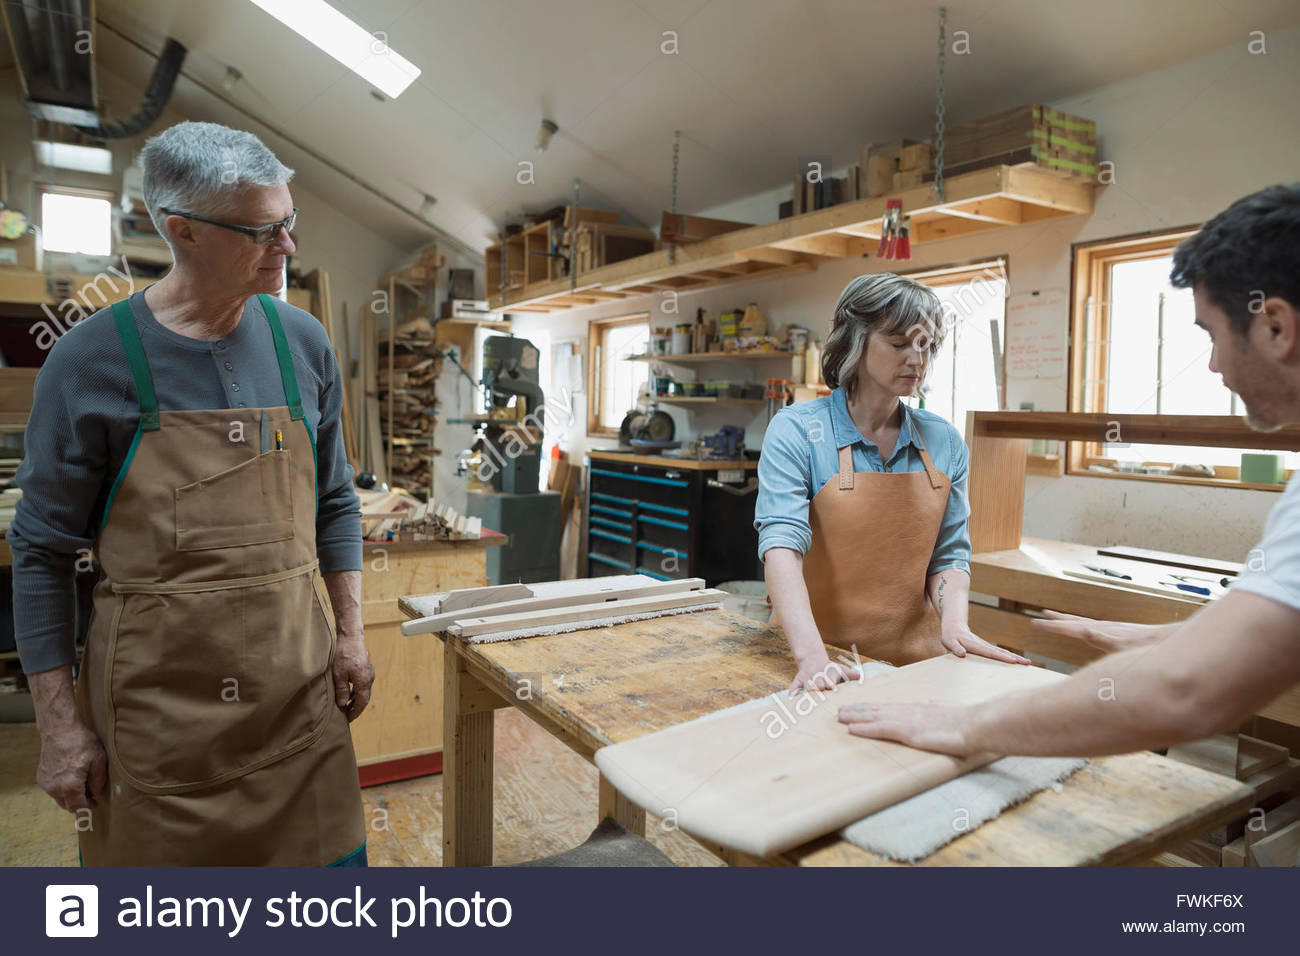 Carpenters examining wood pieces in workshop - Stock Image